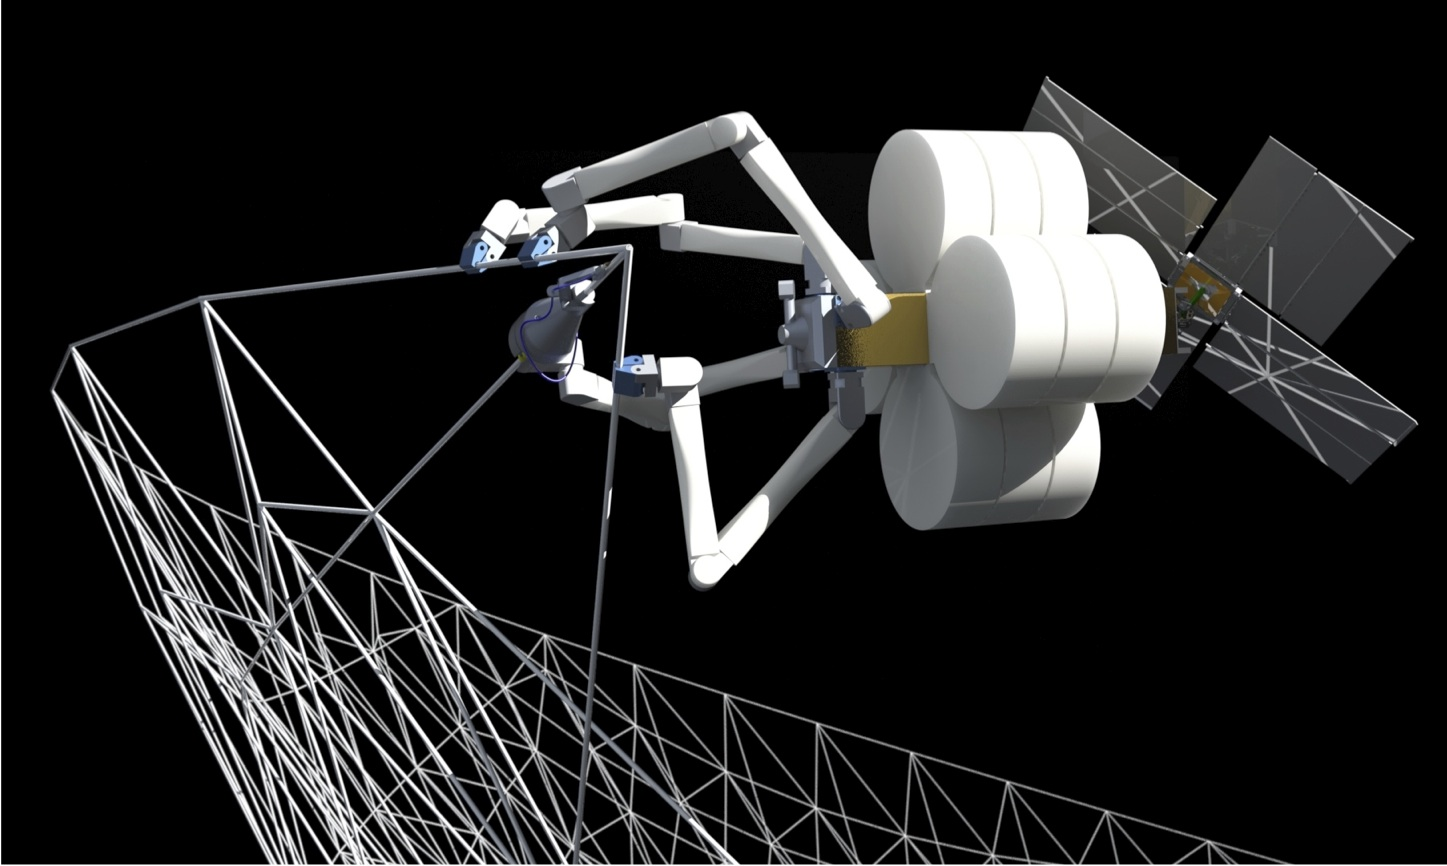 Incredible Technology: Spiderlike Robots Could Build Giant Space Structures